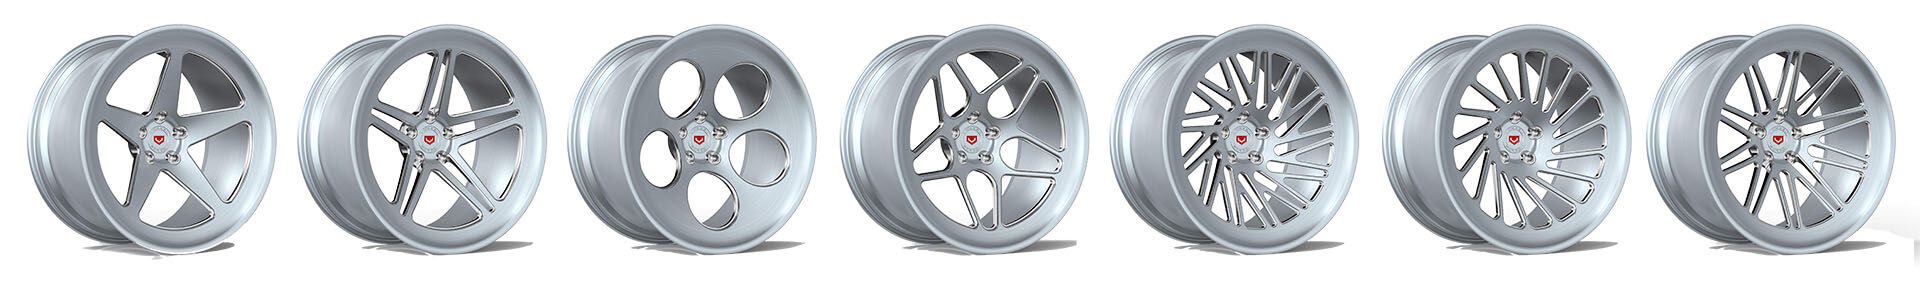 Vossen LC Series Wheel Lineup